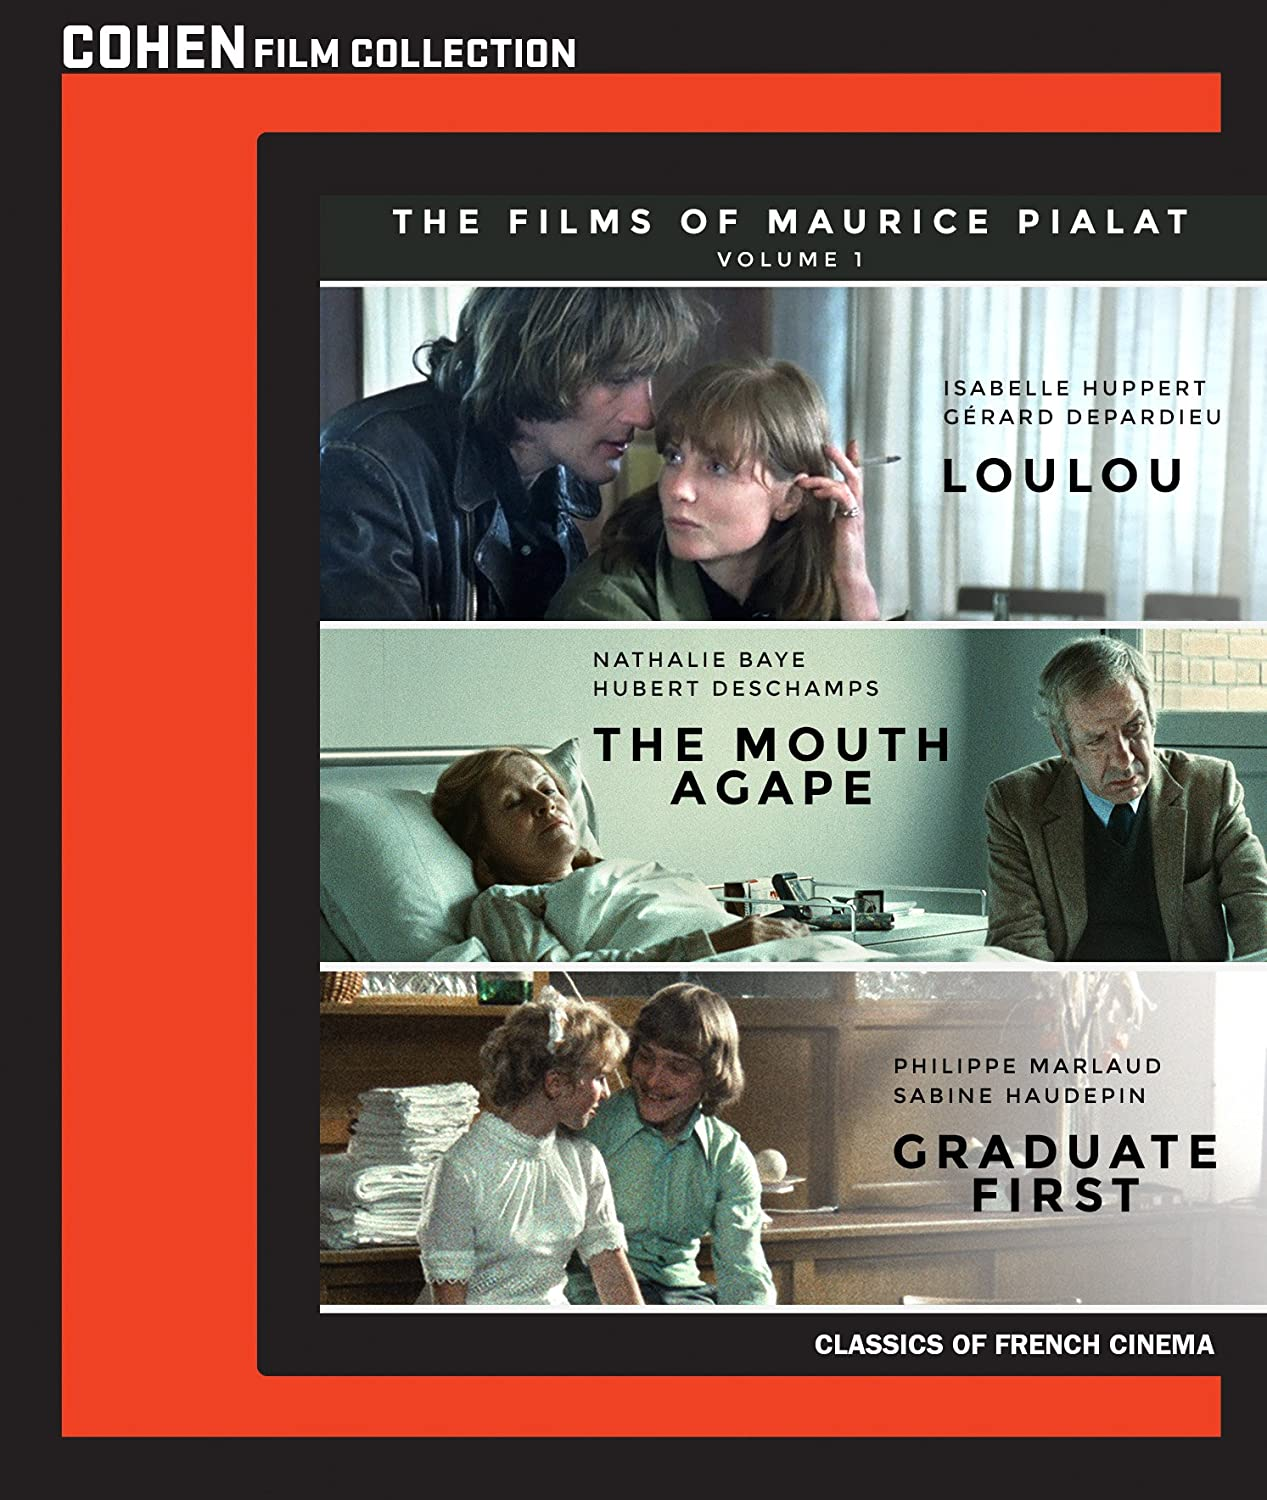 FILMS Max 42% OFF 5% OFF OF MAURICE PIALAT V1 THE BD Blu-ray